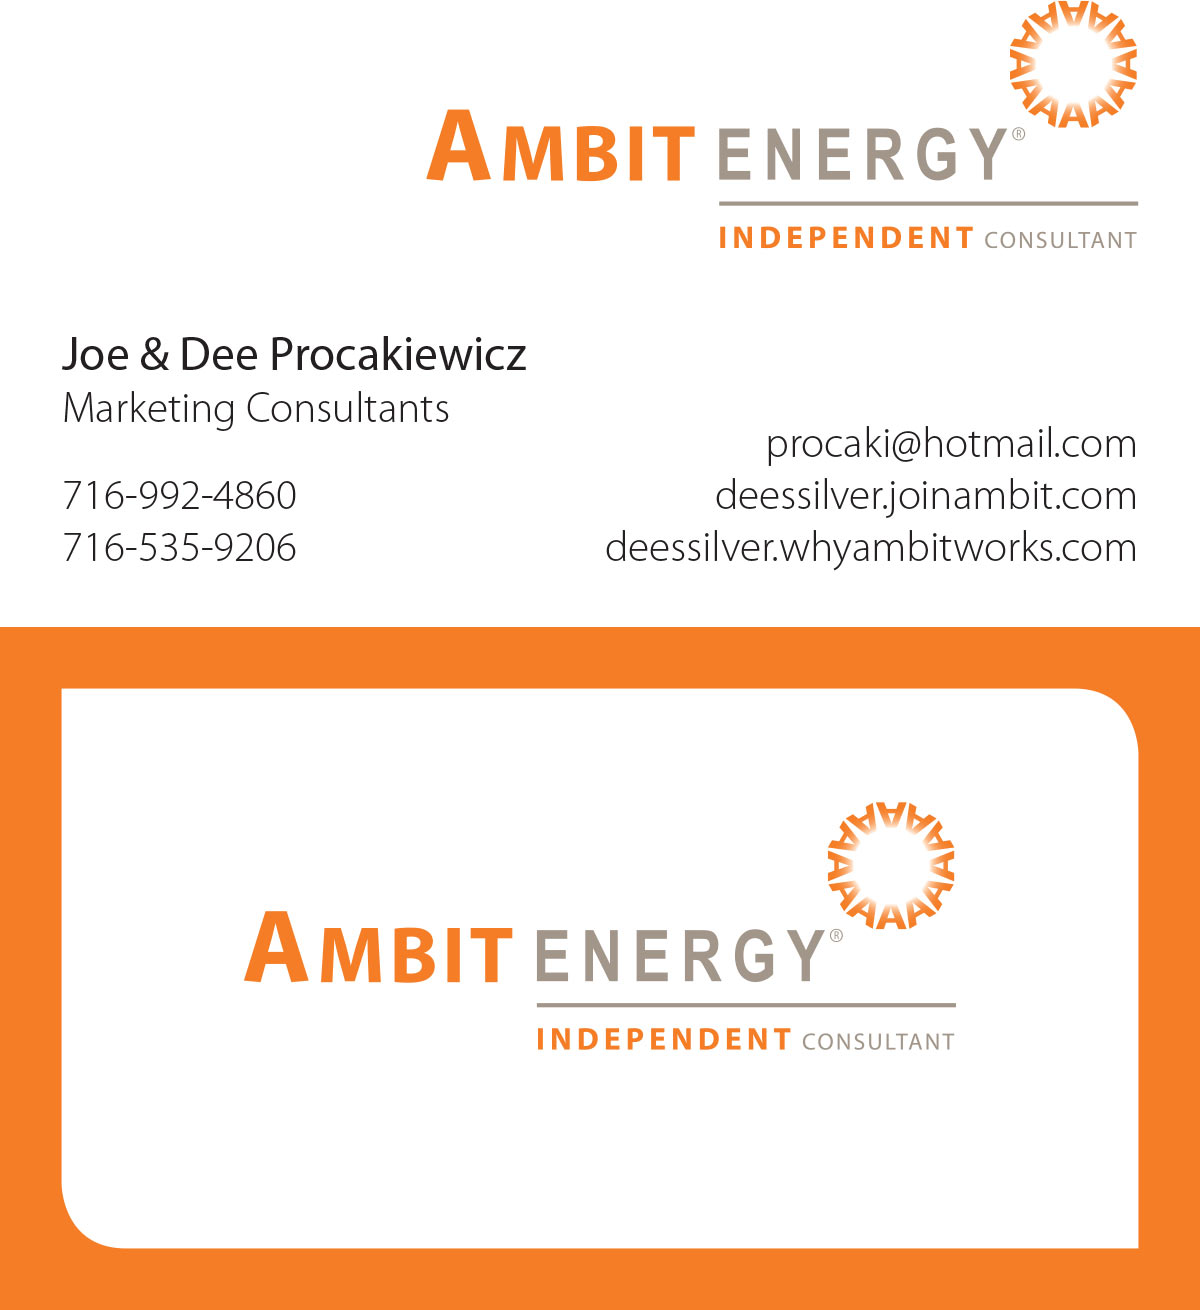 Business cards evenhouse printing for Ambit energy business card template